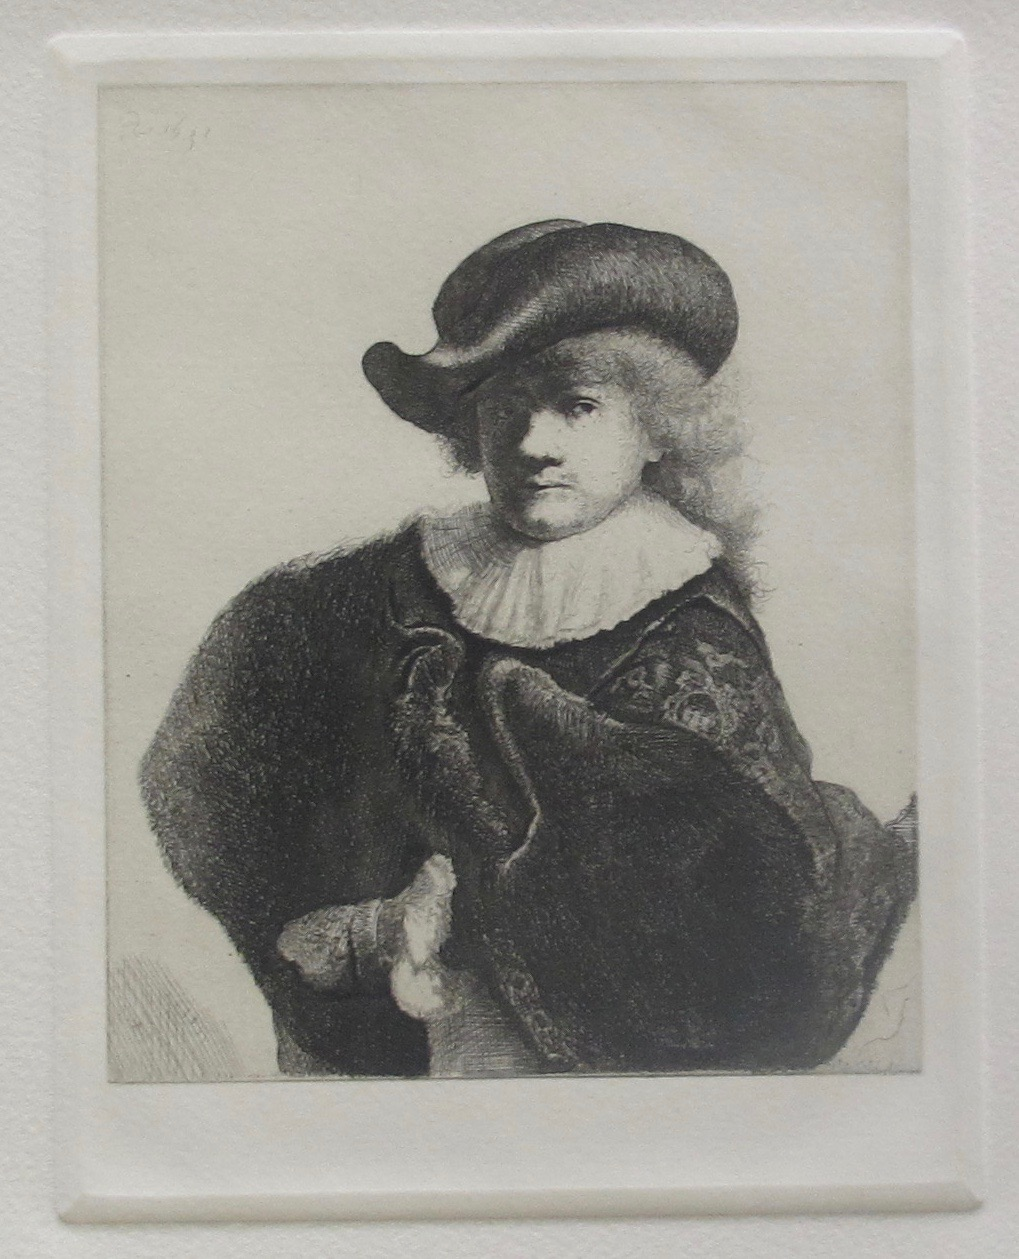 REMBRANDT SELF PORTRAIT IN SOFT HAT EMBROIDERED CLOAK Etching by Amand Durand